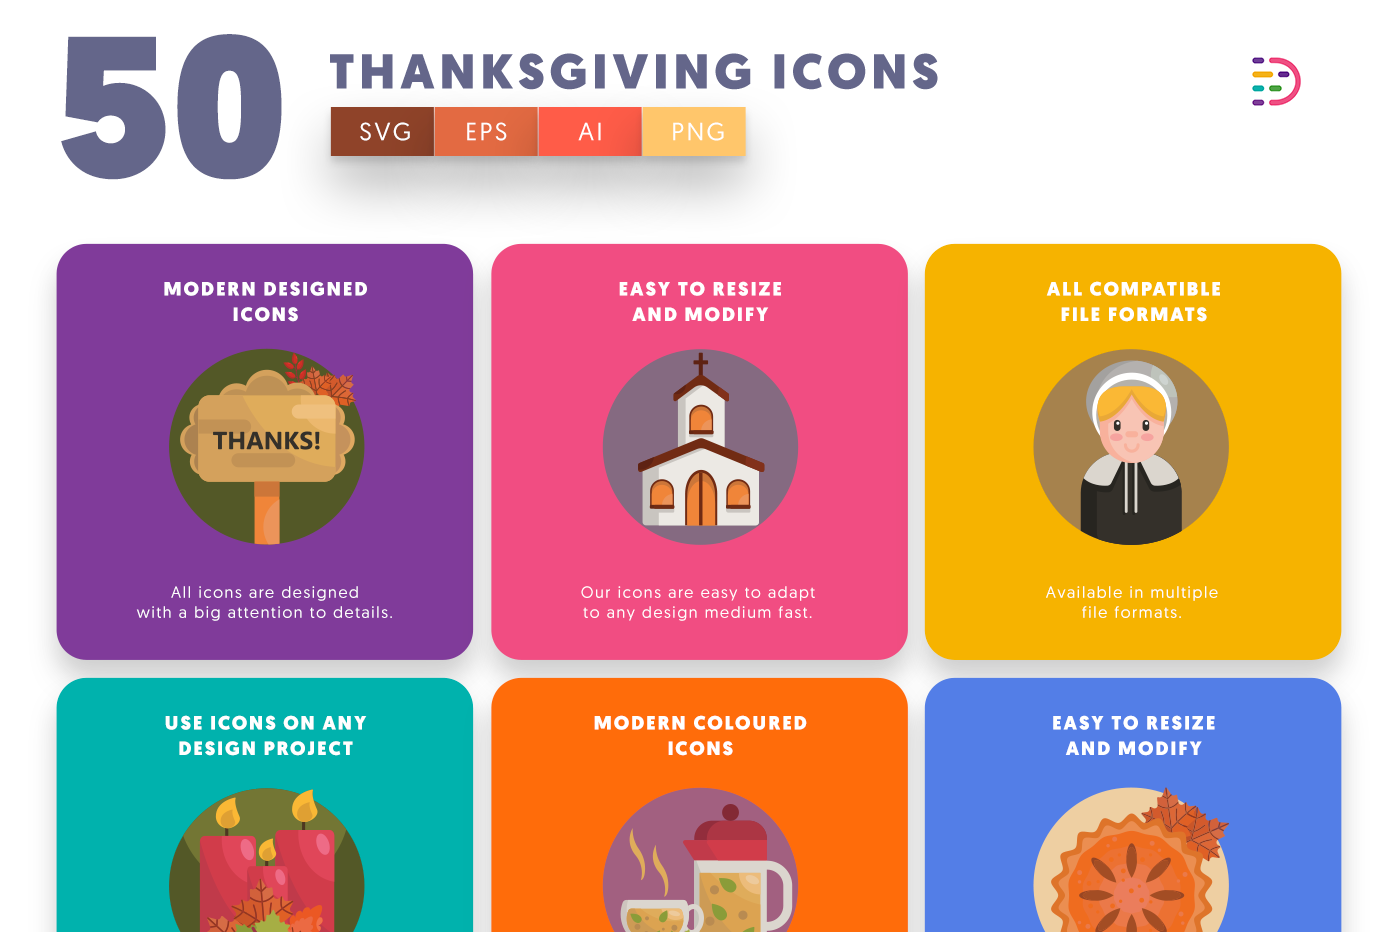 50 Thanksgiving Icons with colored backgrounds